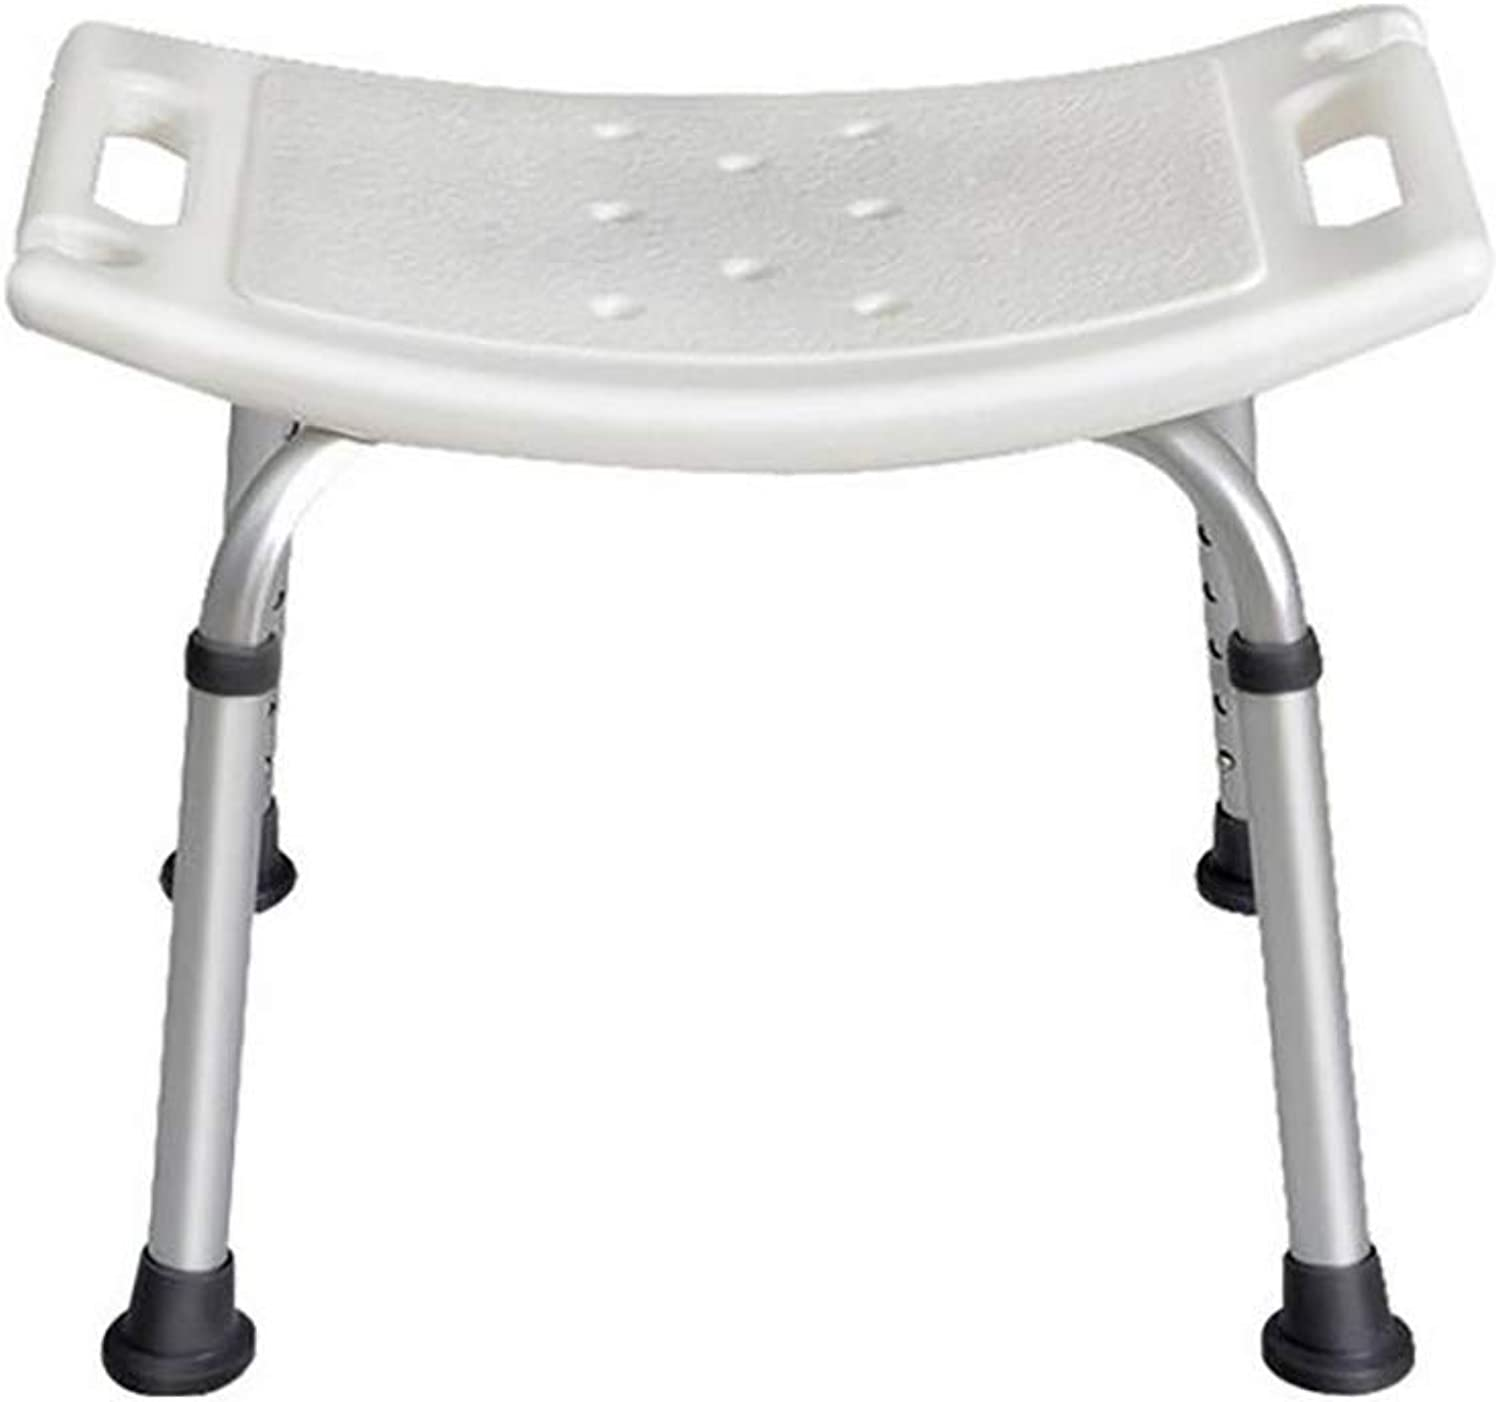 SISHUINIANHUA Shower Seat,Adjustable Height,Lightweight Folding,Suitable For The Elderly And Pregnant Women,Aluminum Alloy,Non-Slip Base,With Shower Hole [Energy Class A]